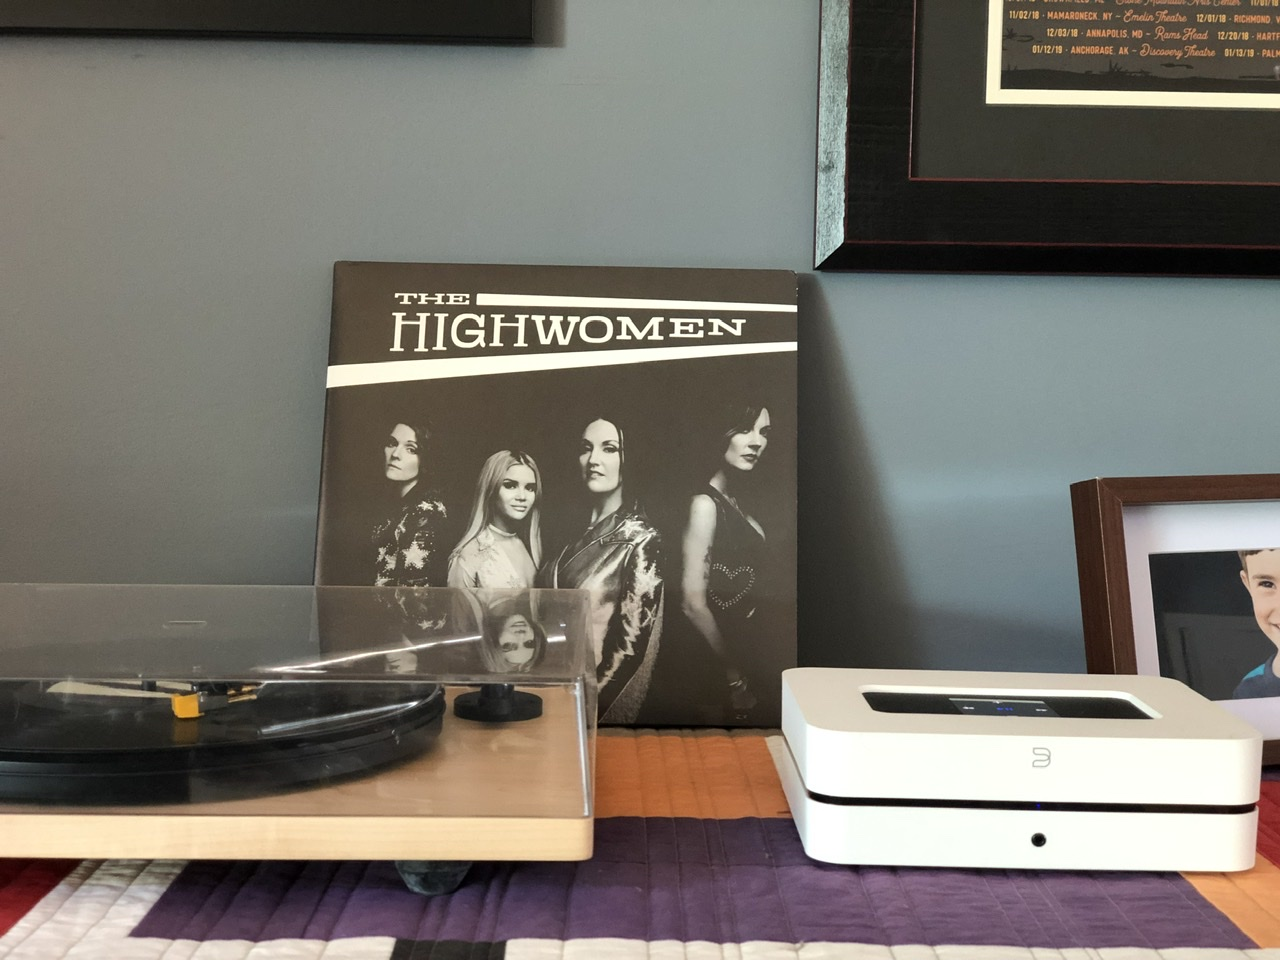 A record player with the album The Highwomen next to it